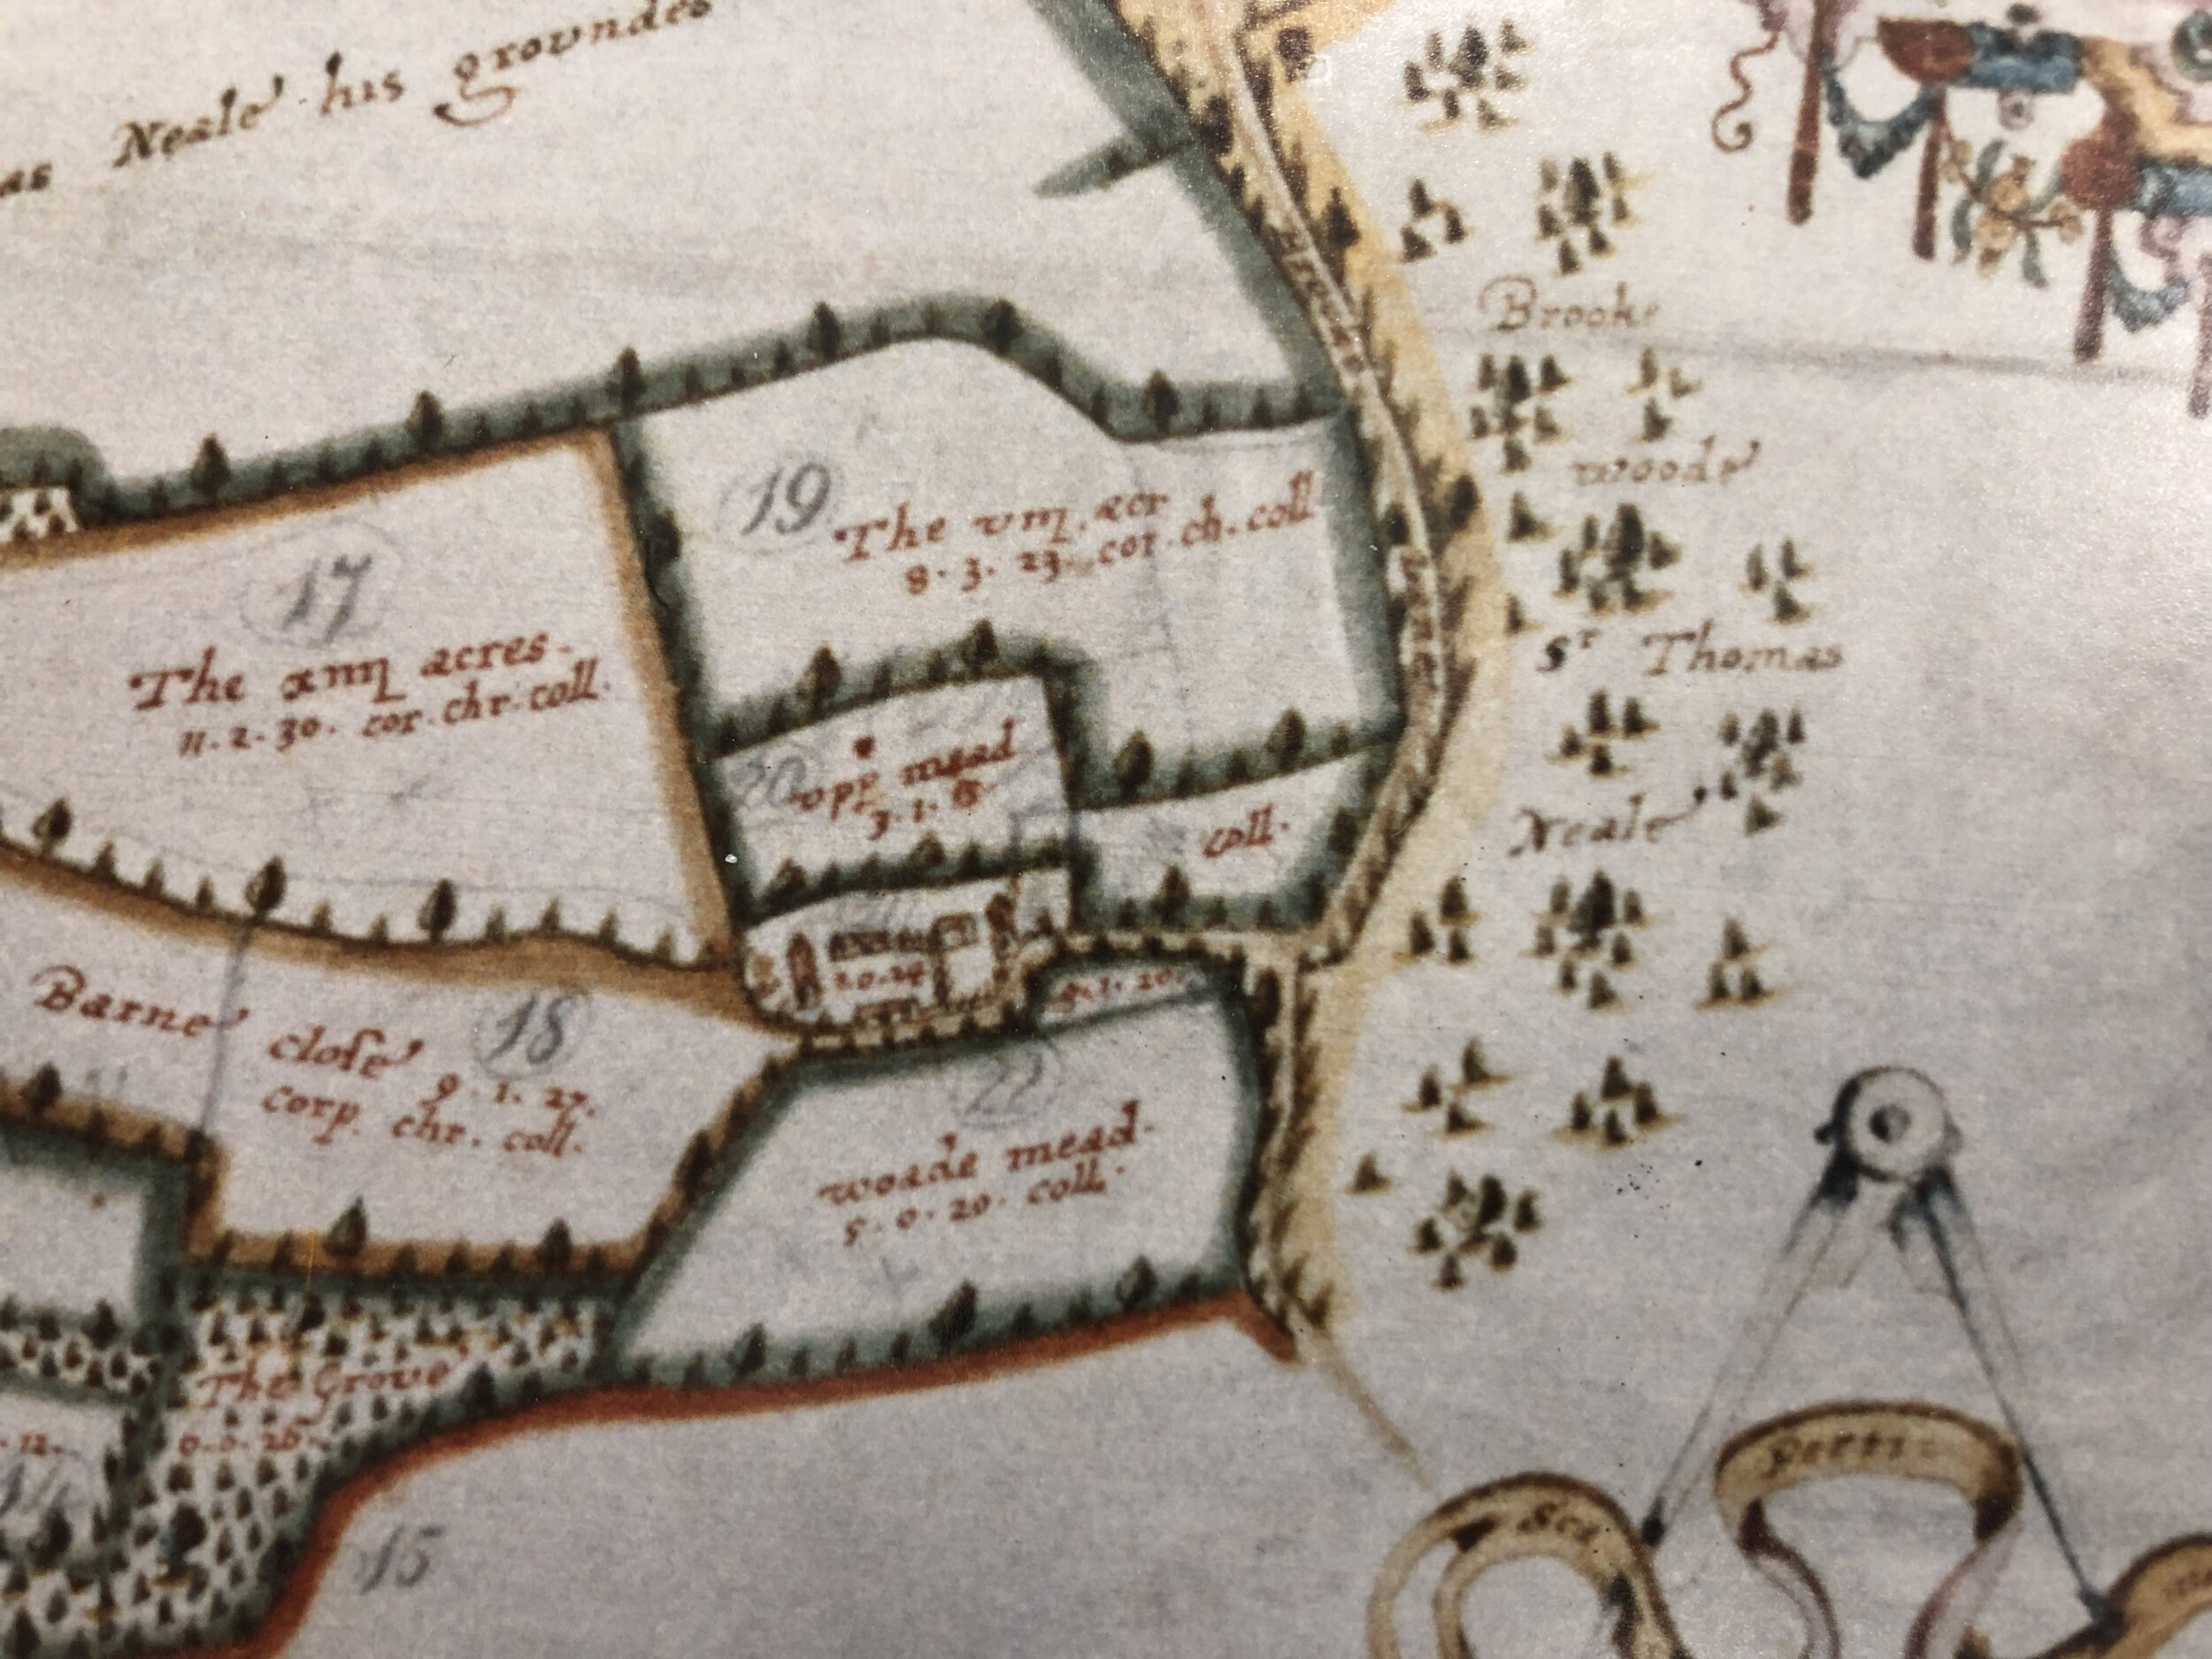 The Langdon Map of Bere Farm 1615